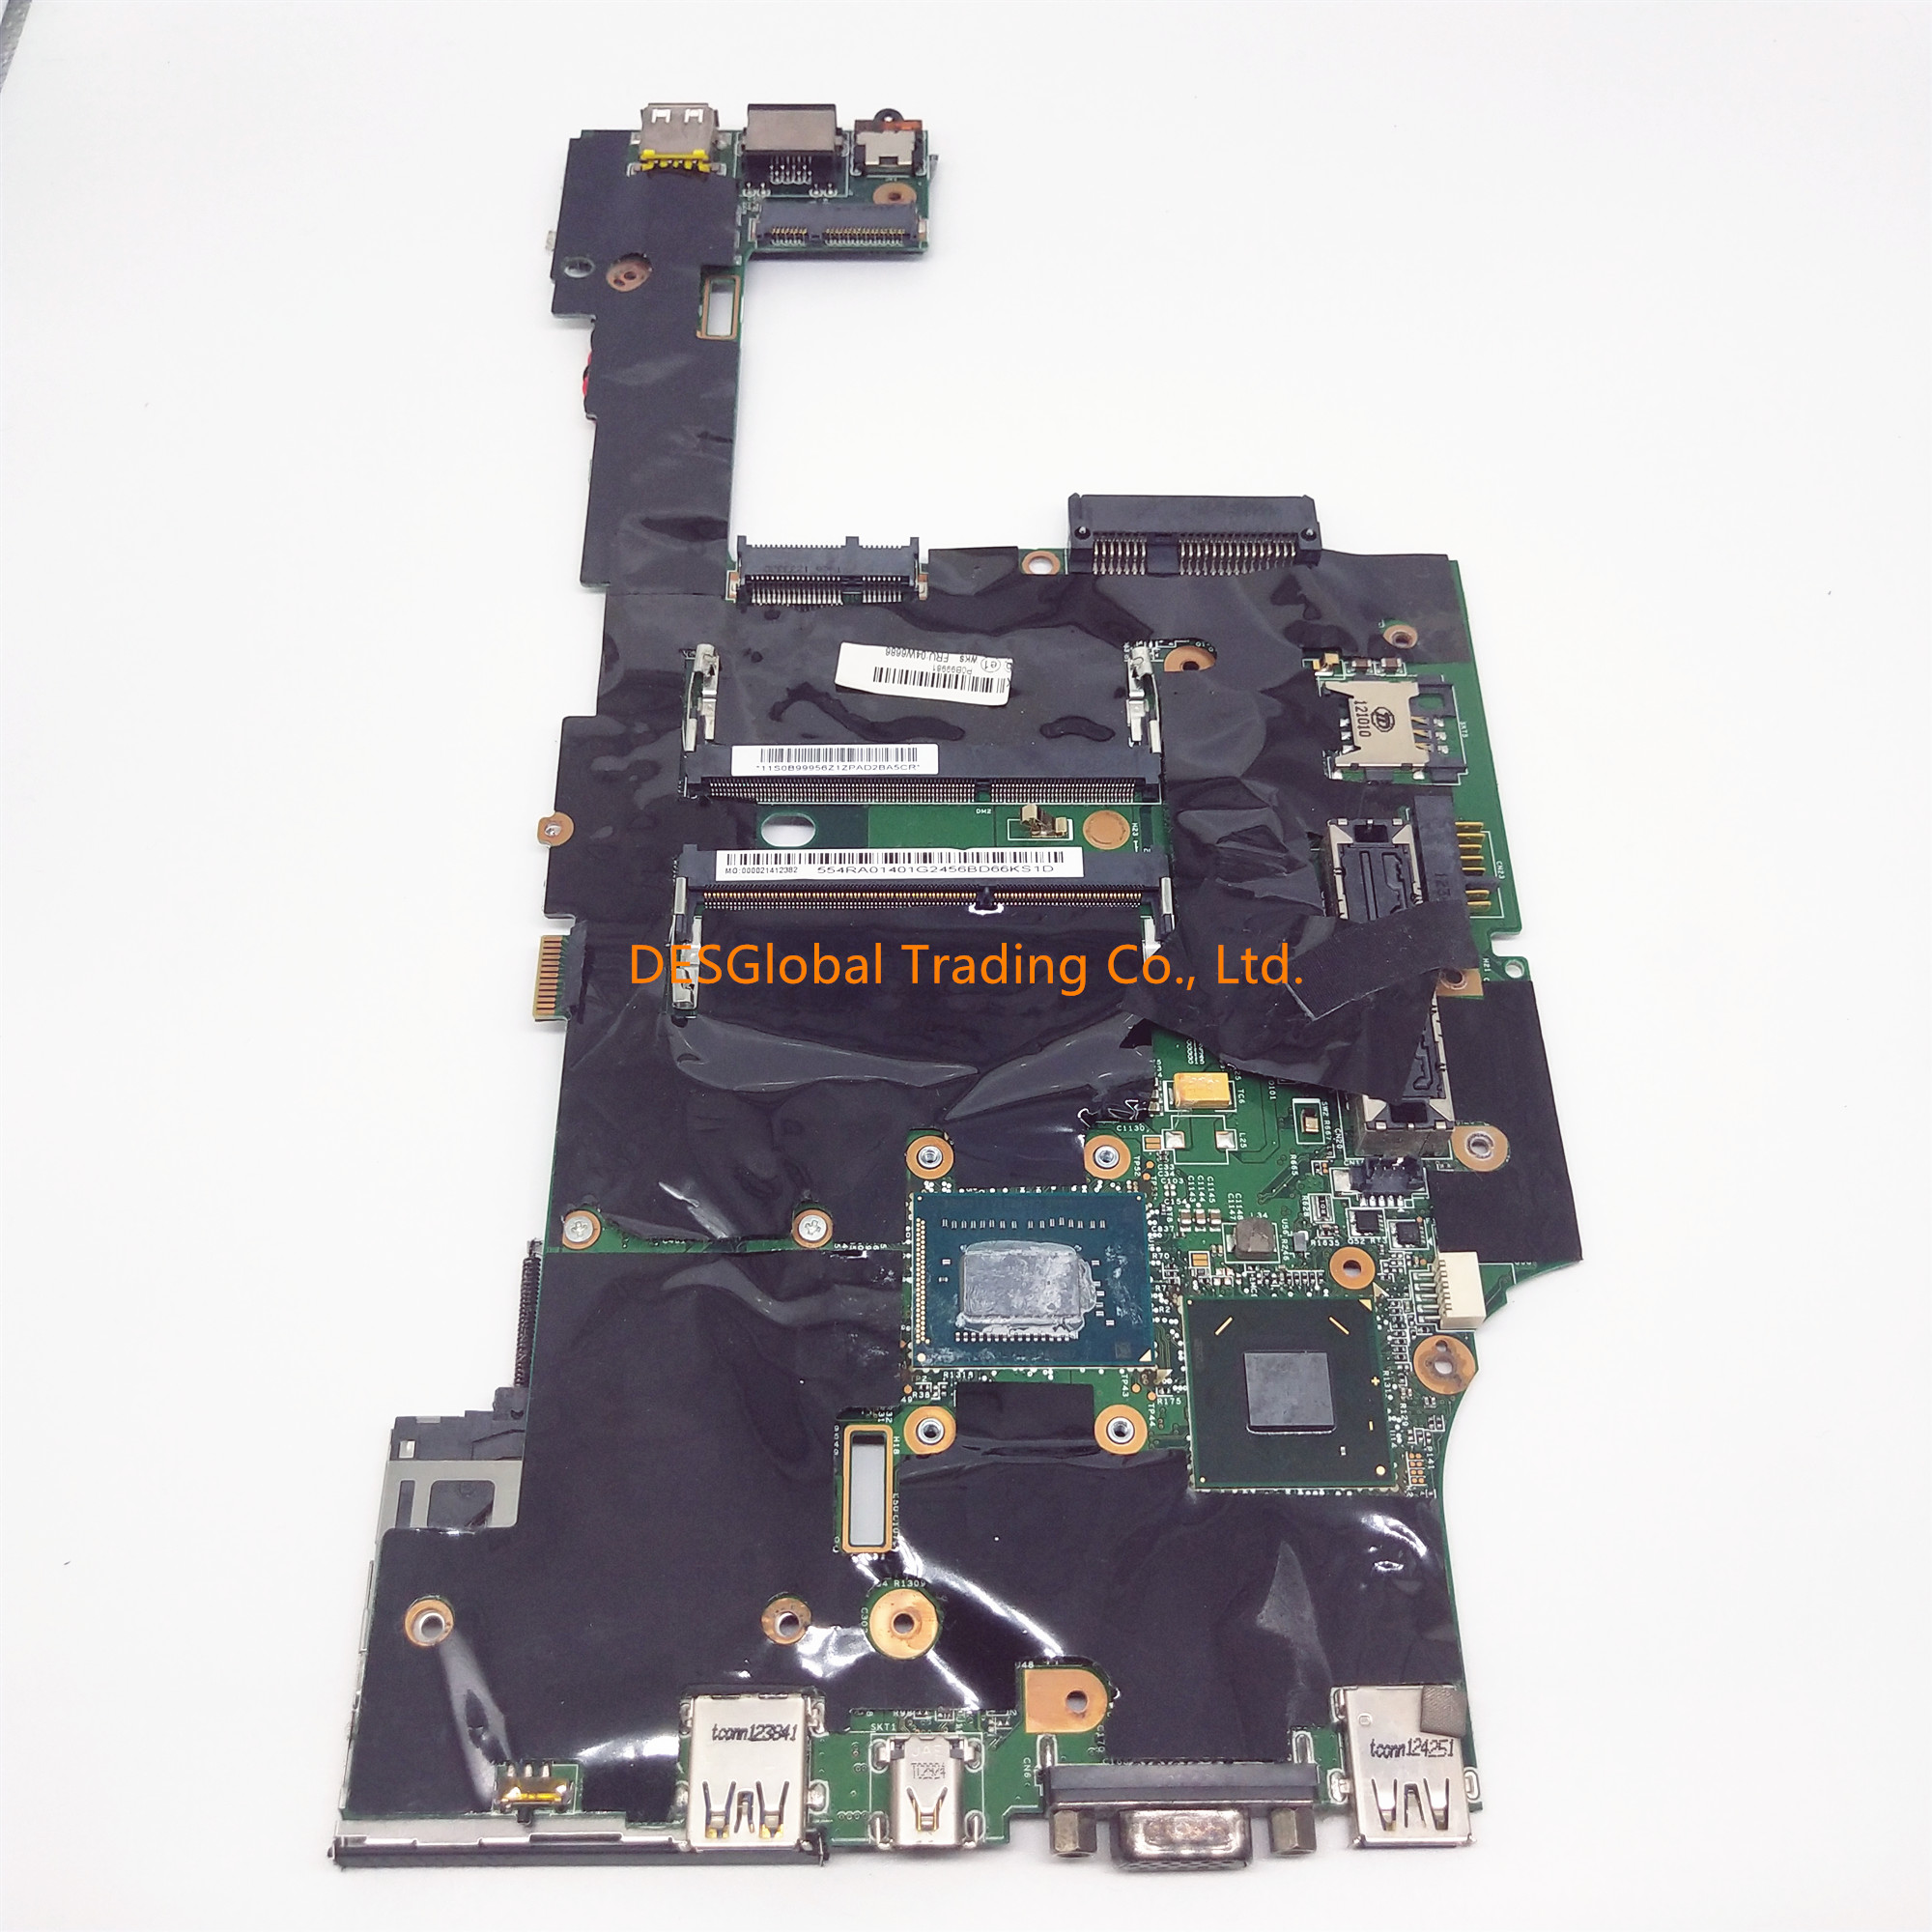 For LENOVO Thinkpad X230 04W6686 SR0MY <font><b>i5</b></font>-<font><b>3320M</b></font> DDR3 Laptop Motherboard 554RA01401 11S0899956 Mainboard Fully Tested image